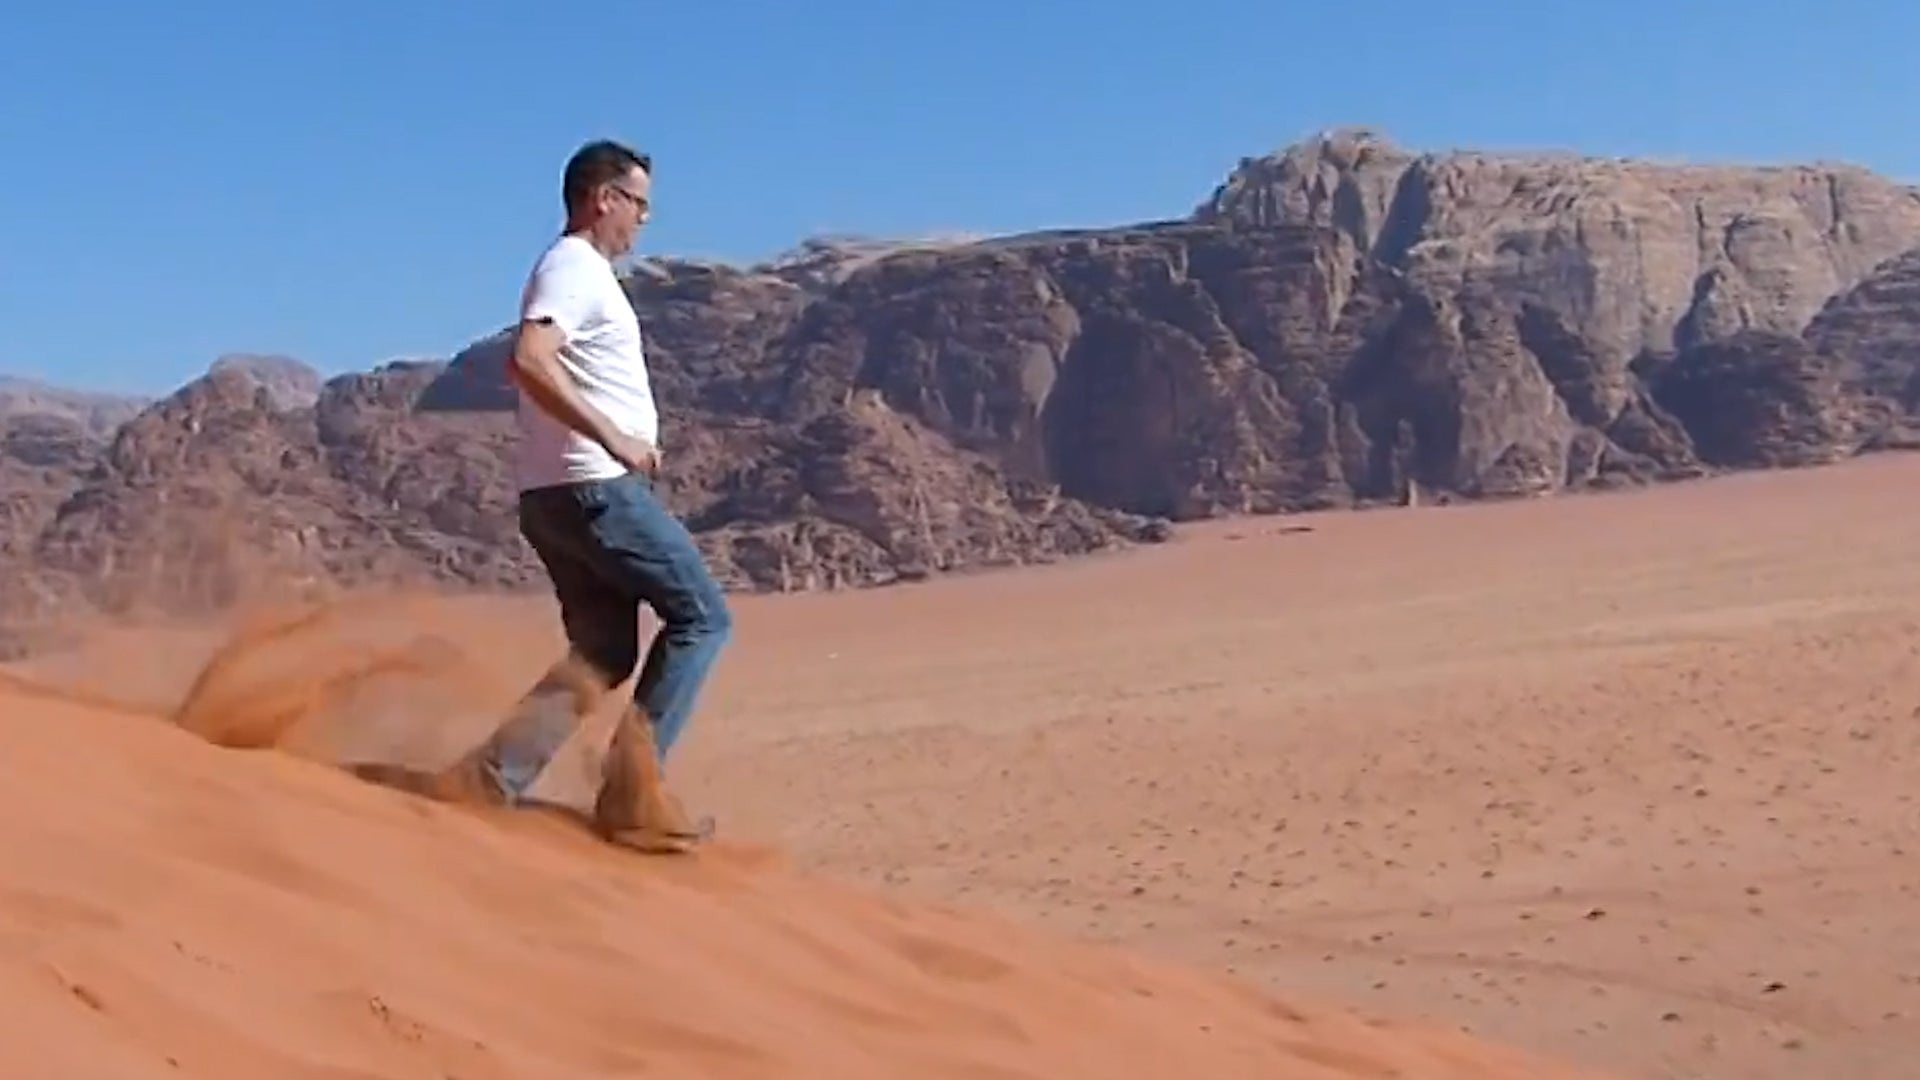 An Unexpected Run Down Jordan's Sand Dunes